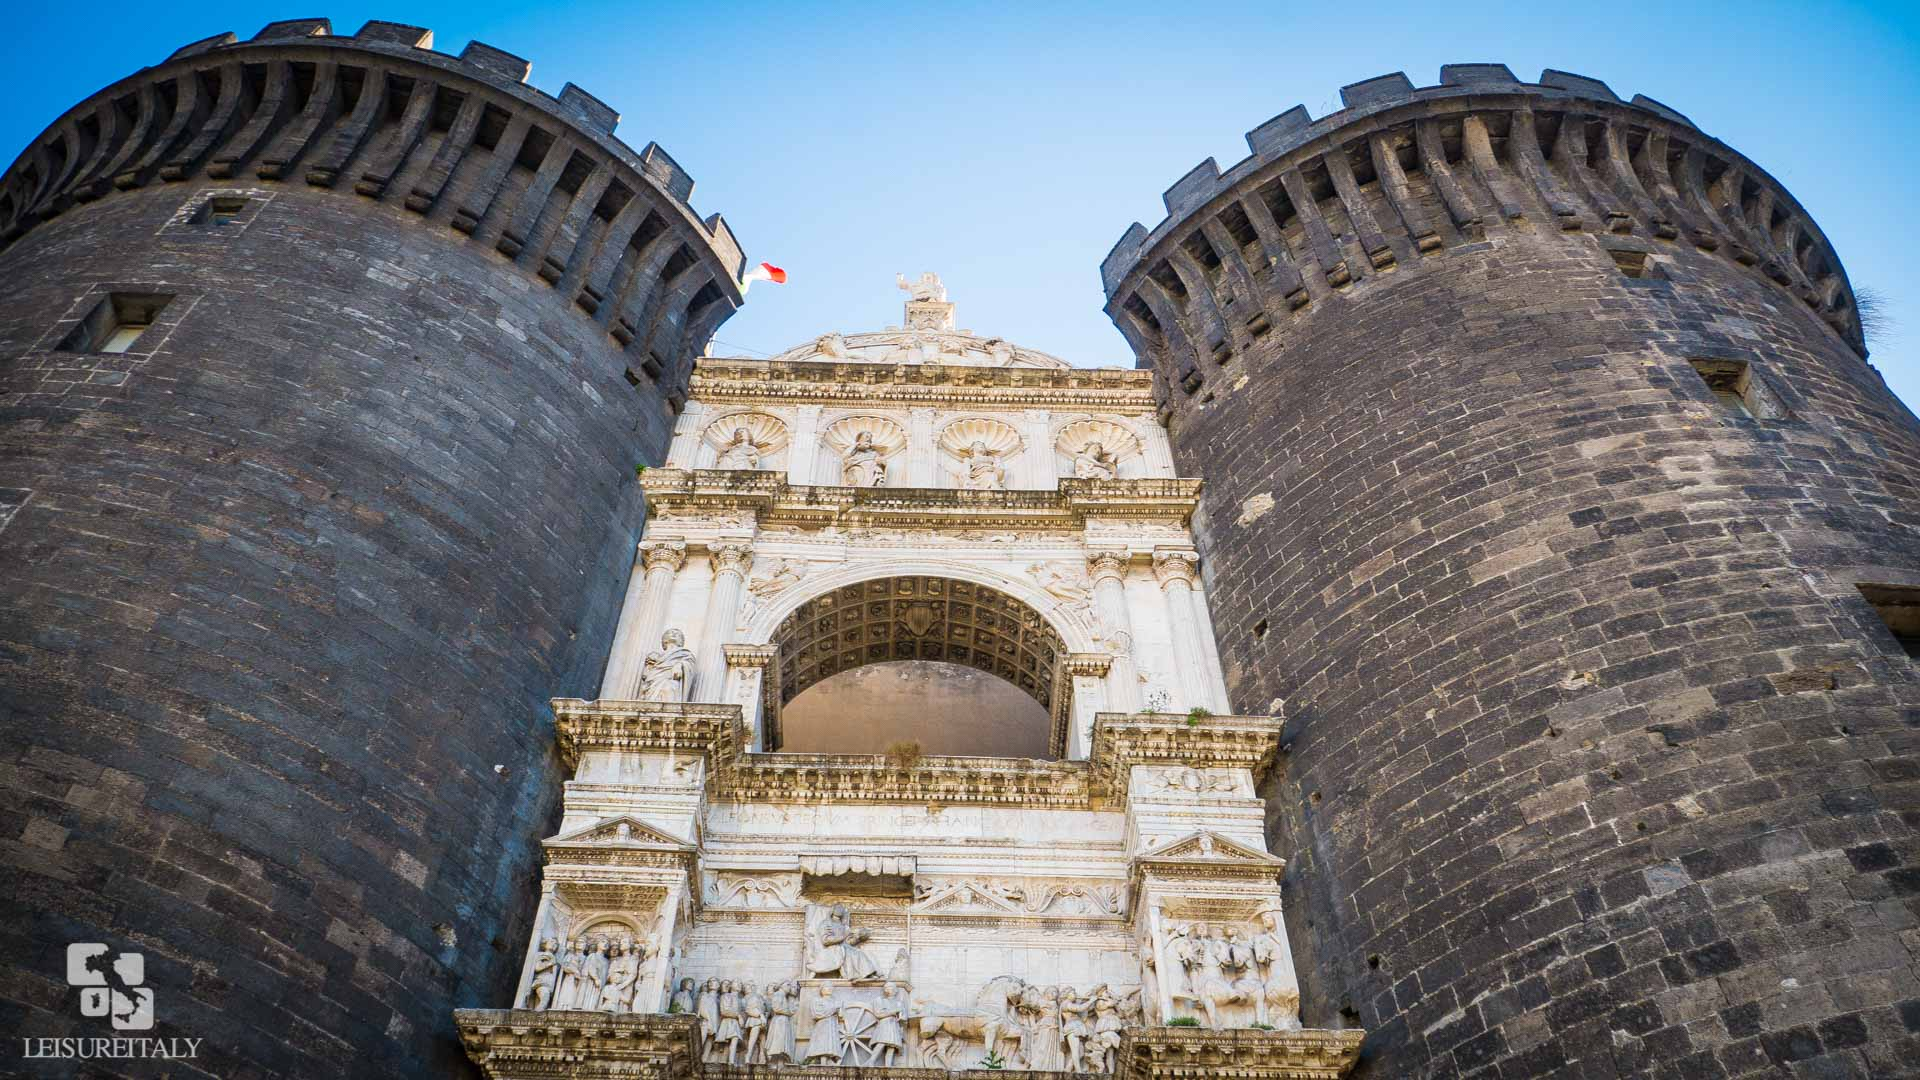 Castle Nuovo - Marble decorated entrance